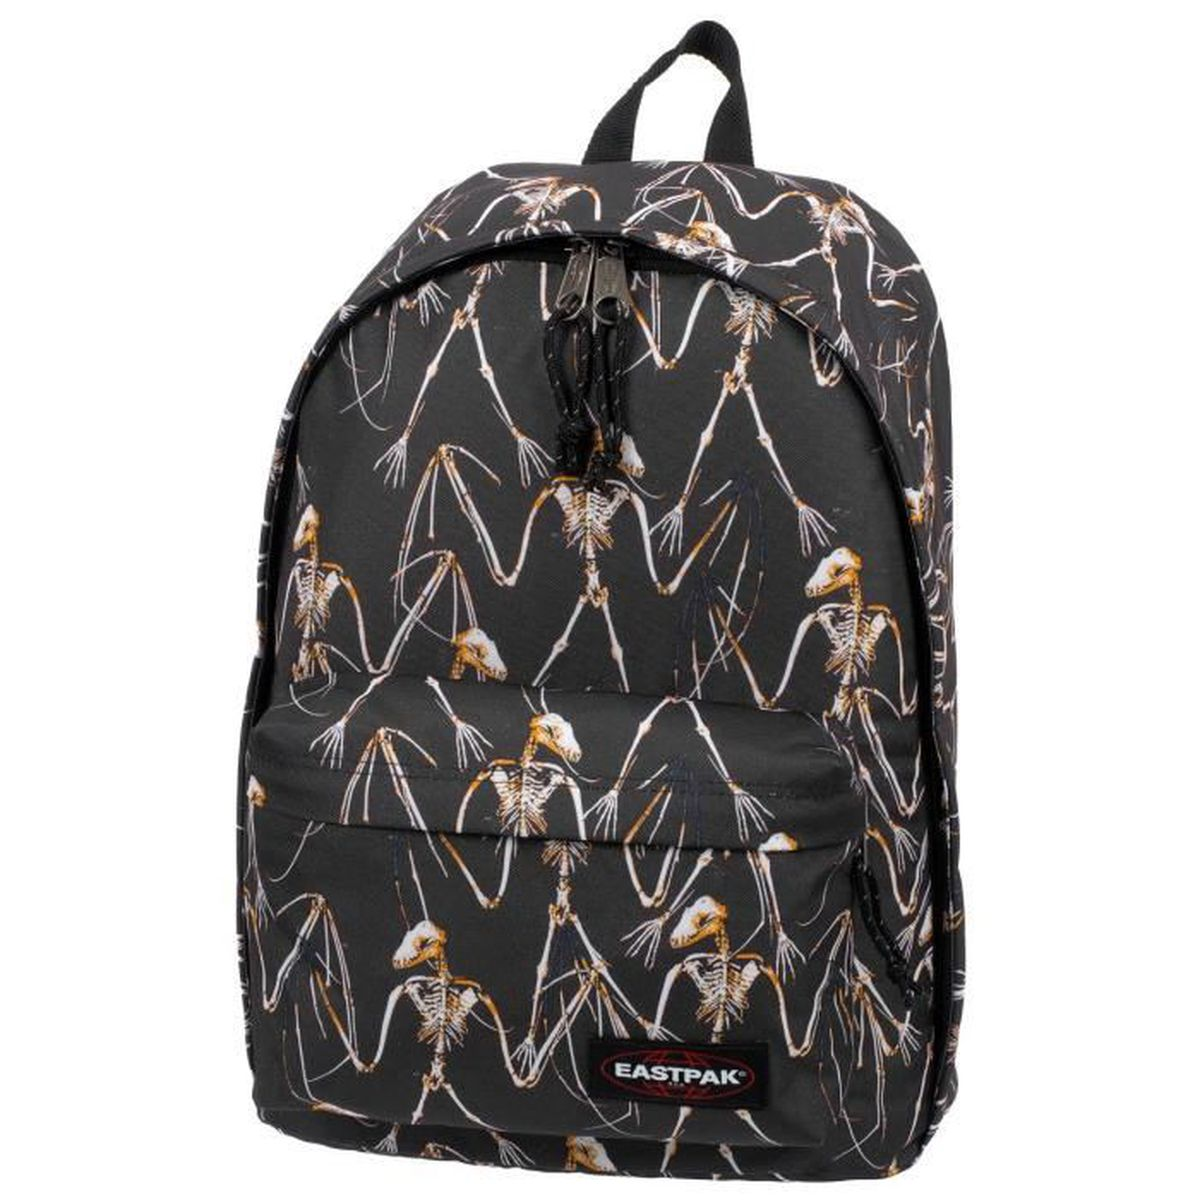 Collège Dos Office Noir Off À Uni Draculbone Eastpak Out Sac qE6BS5Xwx